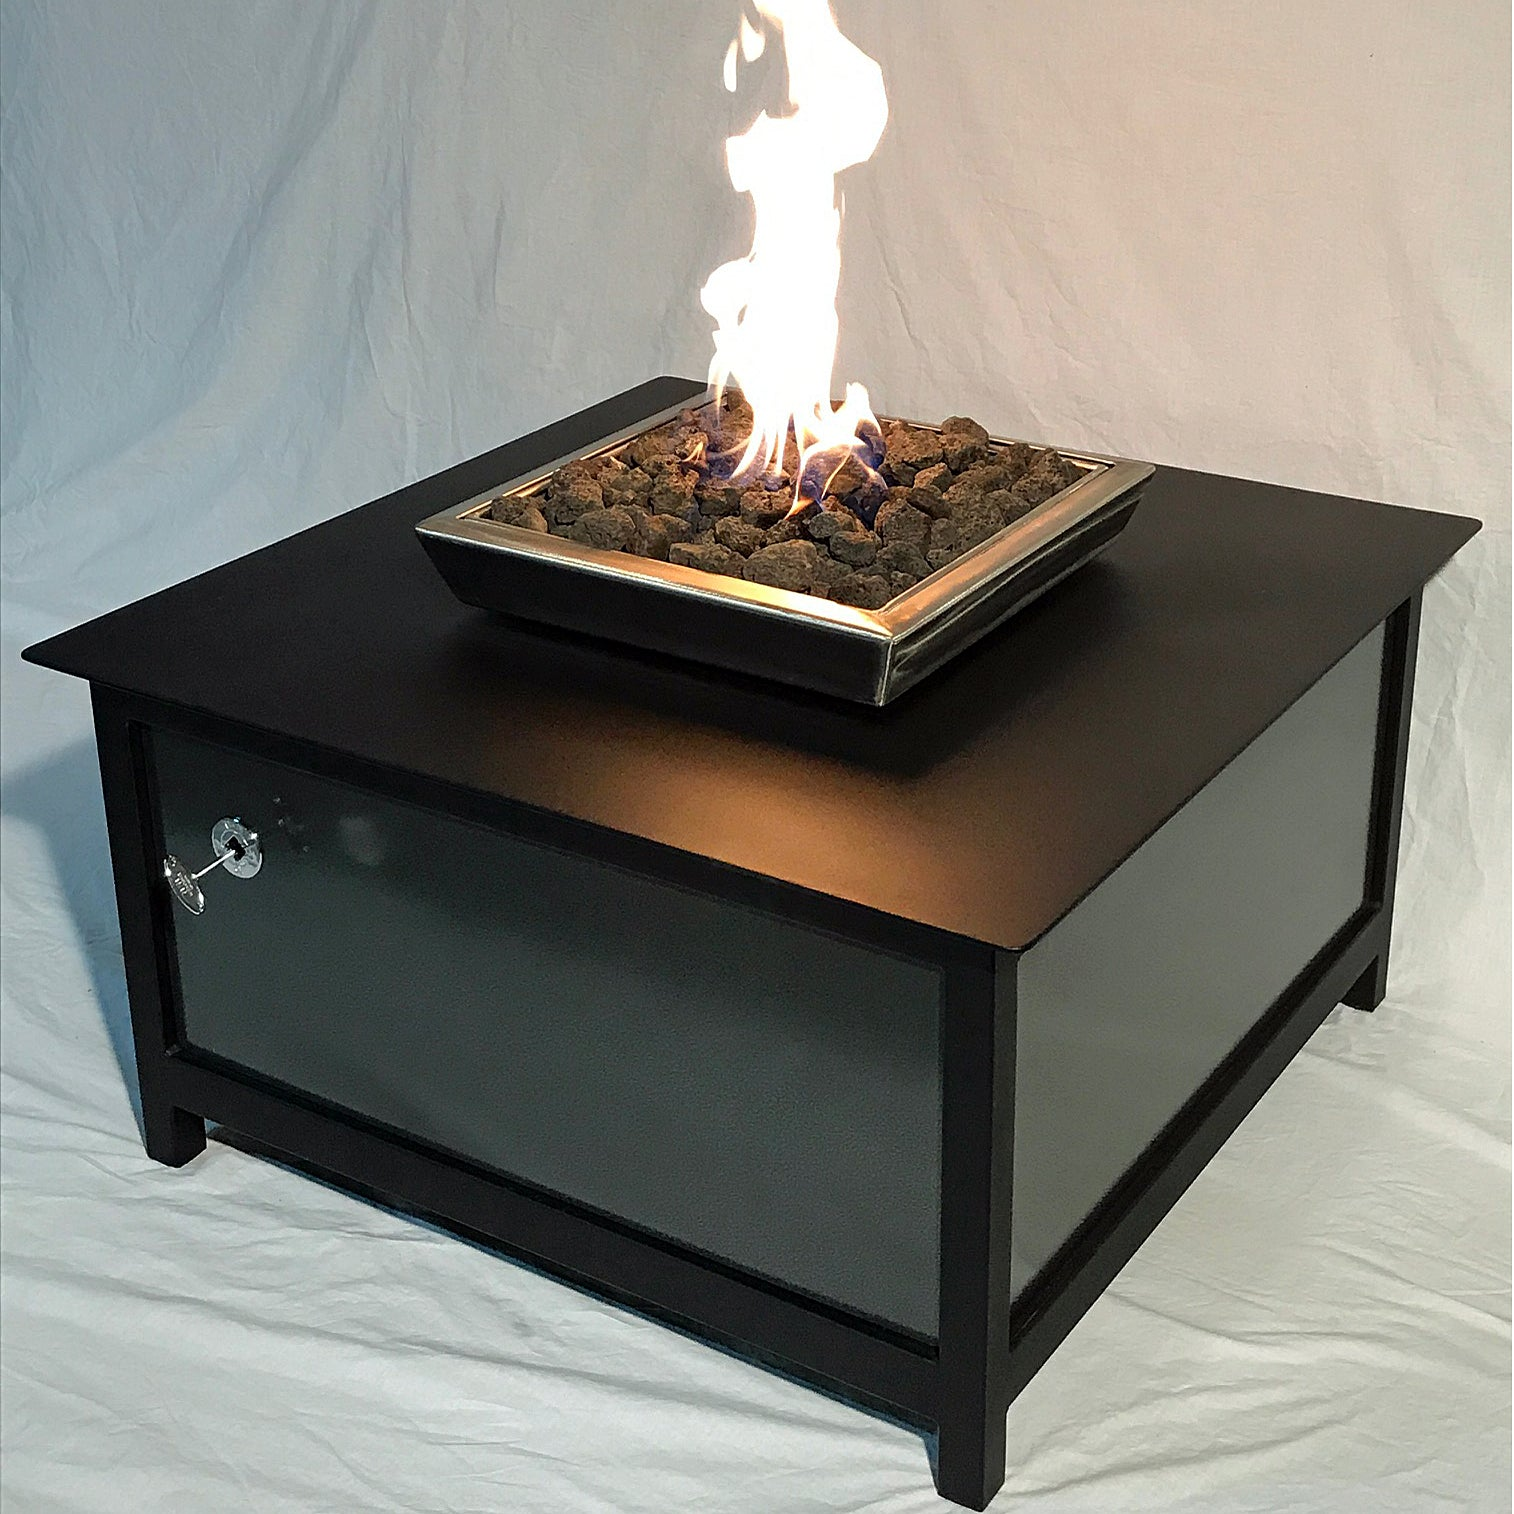 IMPACT Fire Table, Square, firepit or fire pit, Burn Natural Gas or Propane, Heavy Duty Steel, Raven Black frame and table top, Stainless Steel Firebox, Silver vein powder coated Steel Side Panel Option, Made in the USA